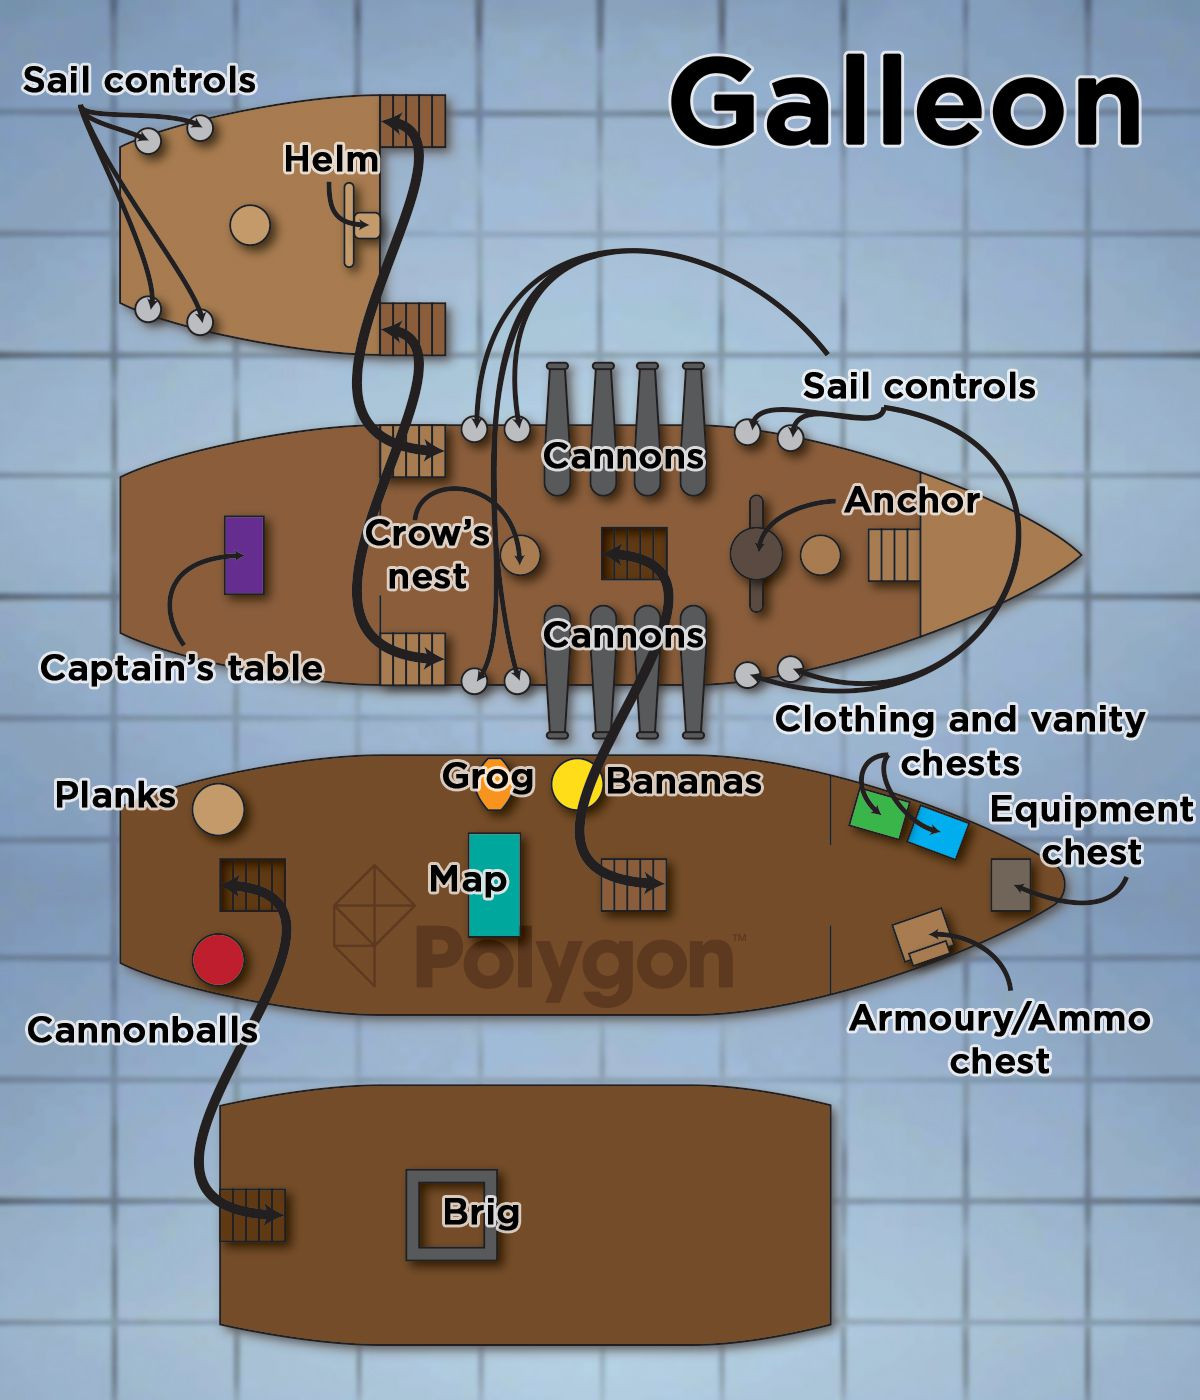 hight resolution of  the galleon the quarterdeck if we re being accurate is where you steer and manage the mizzen sail on the rearmost mast unlike the sloop this is